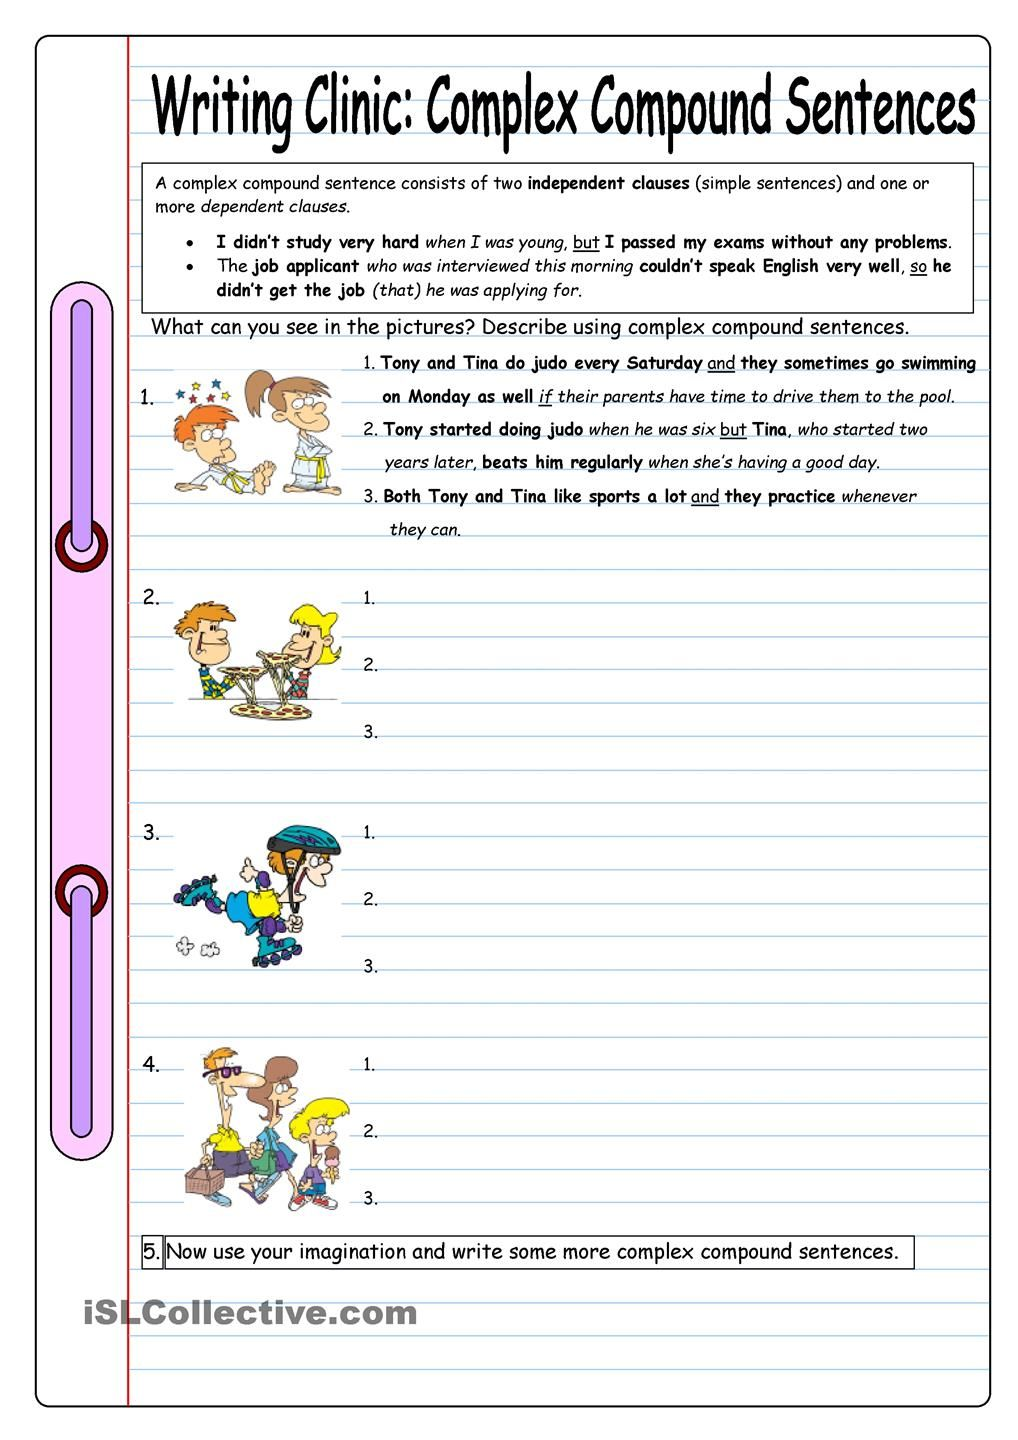 worksheet Compound Complex Sentence Worksheets writing clinic complex compound sentences school pinterest worksheet free esl printable worksheets made by teachers